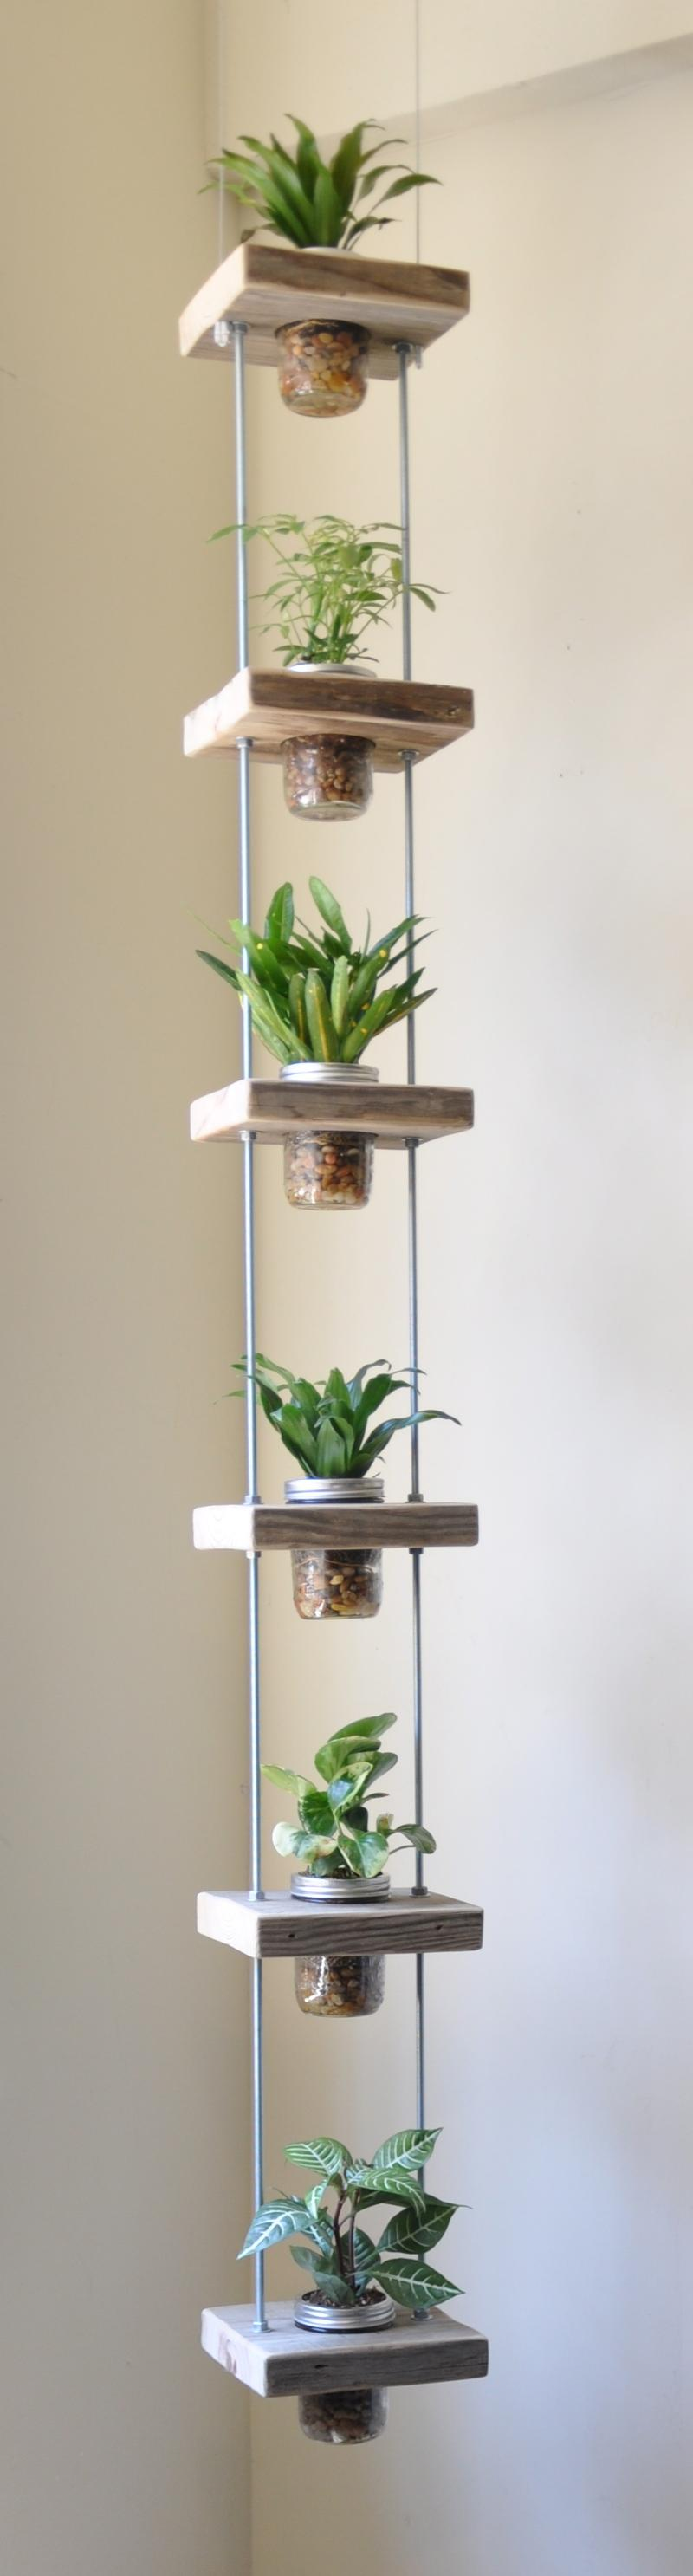 Here is one more hack that will allow you grow your herbs indoors without occupying much space.